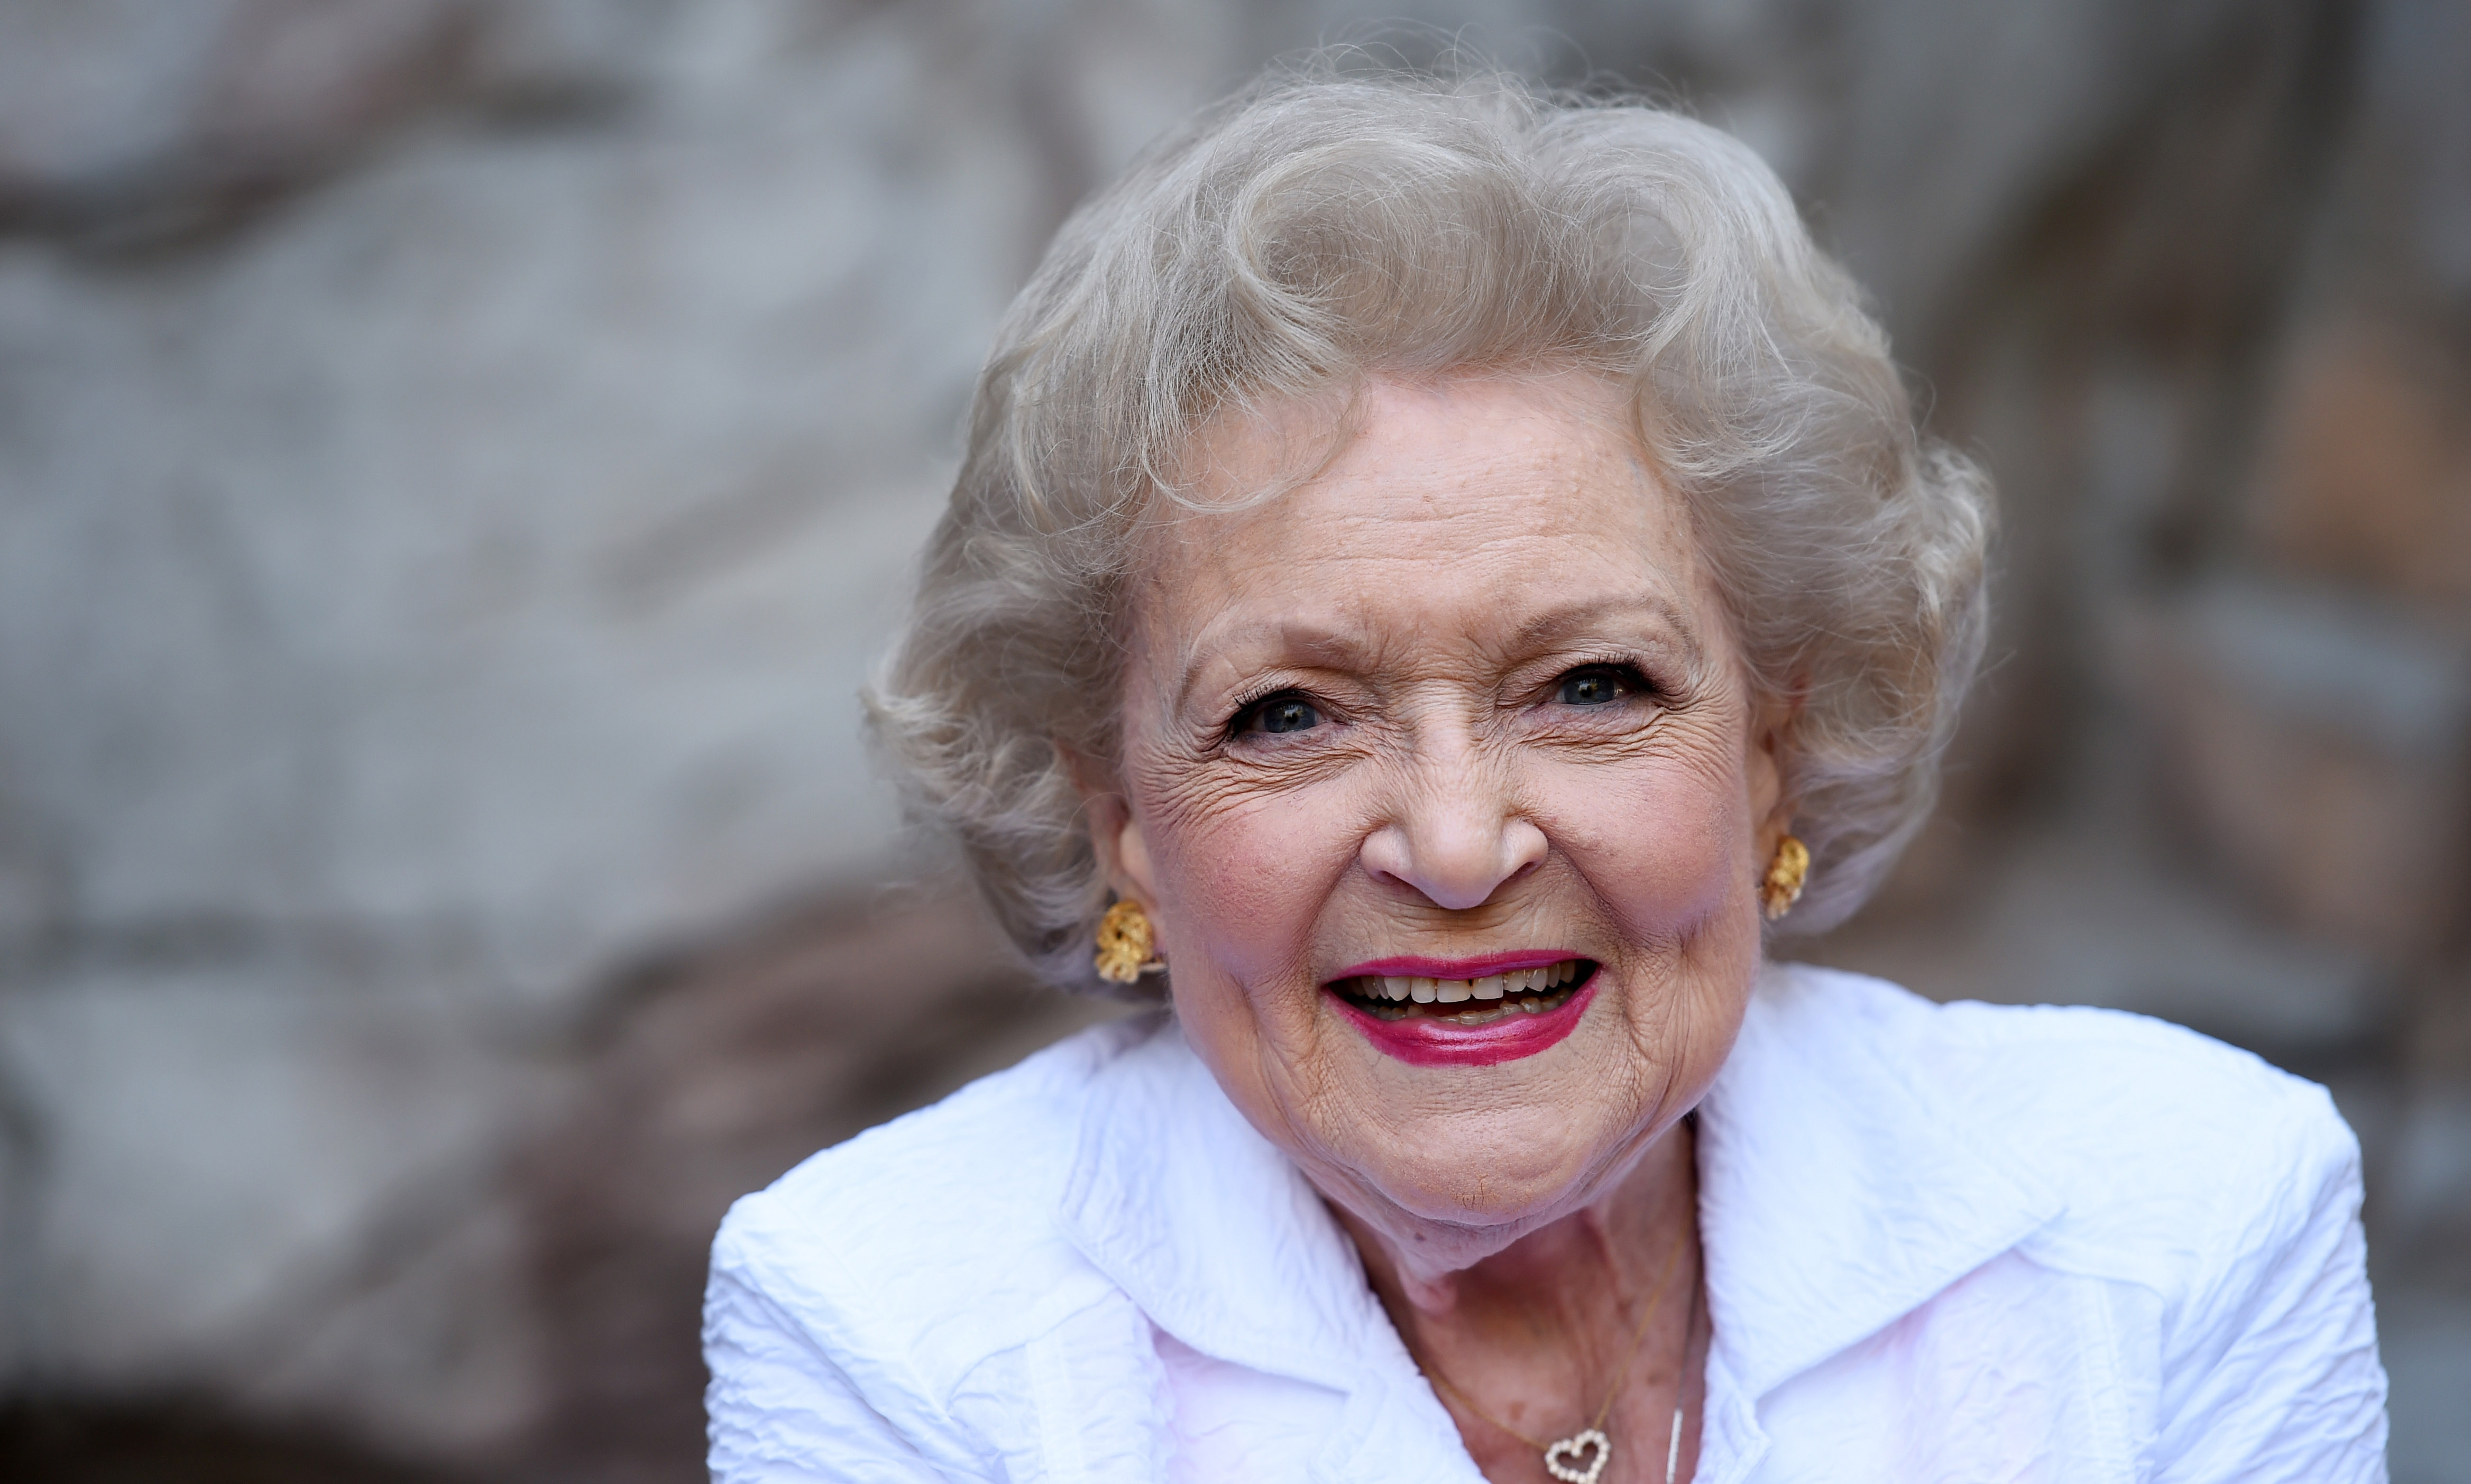 ExclusiveBetty White Is 'Very Thankful for Her Life' at Age 97: She Wouldn't 'Change a Thing'